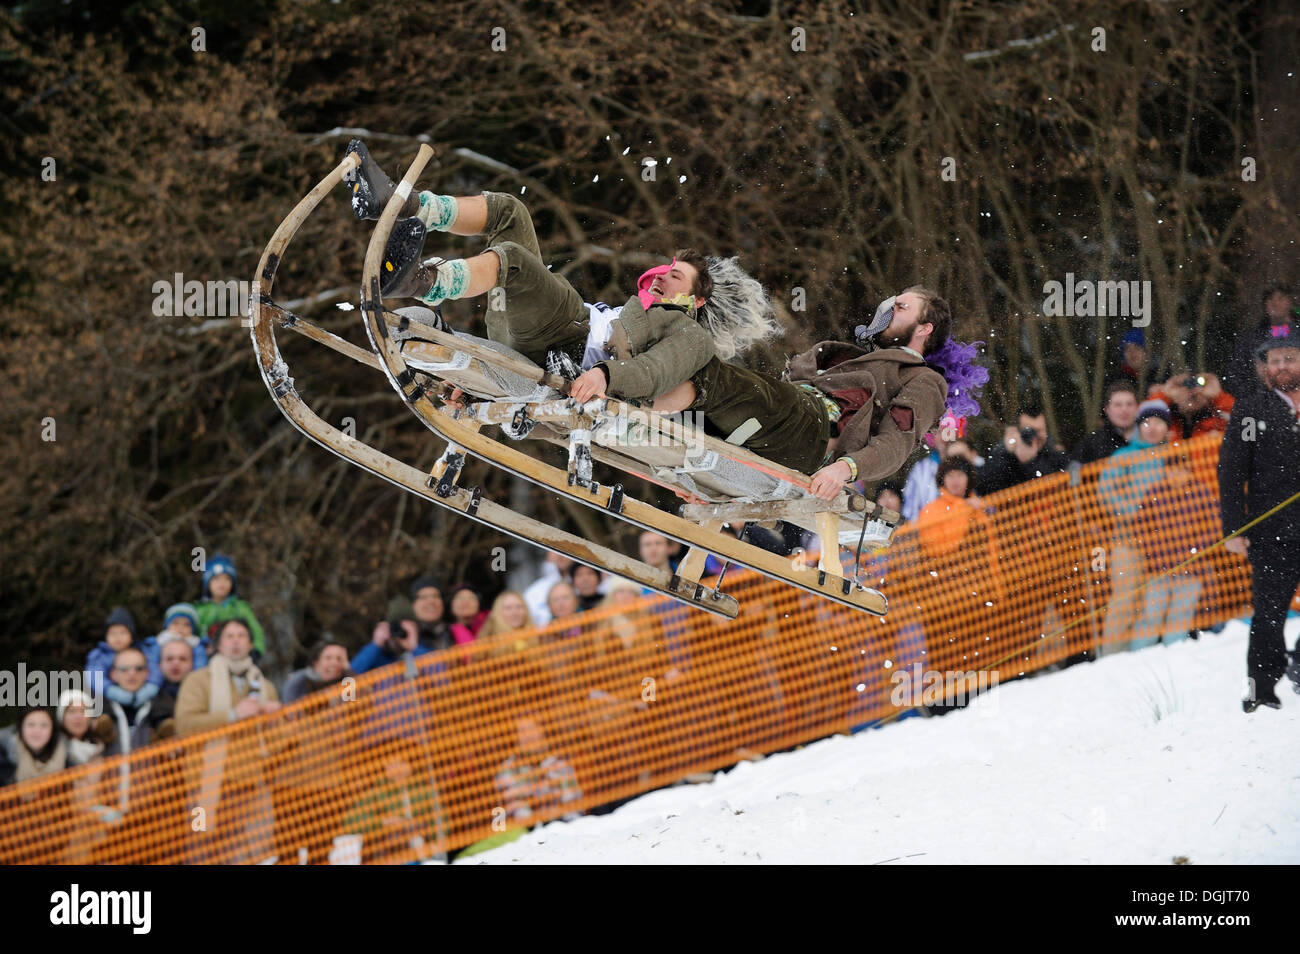 Gaissach horn sledging race, carnival custom, Gaissach, Upper Bavaria, Bavaria, Germany - Stock Image